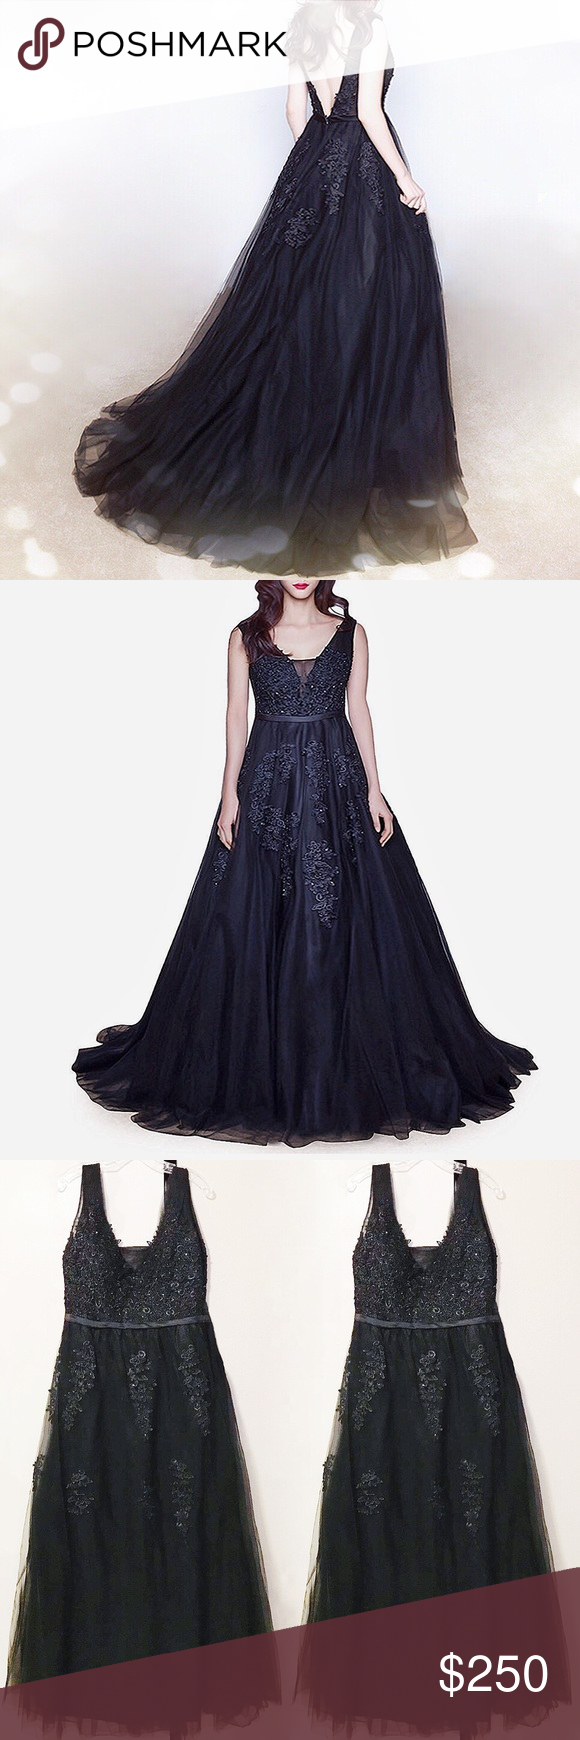 Regular plus flower fairy black wedding gown black wedding